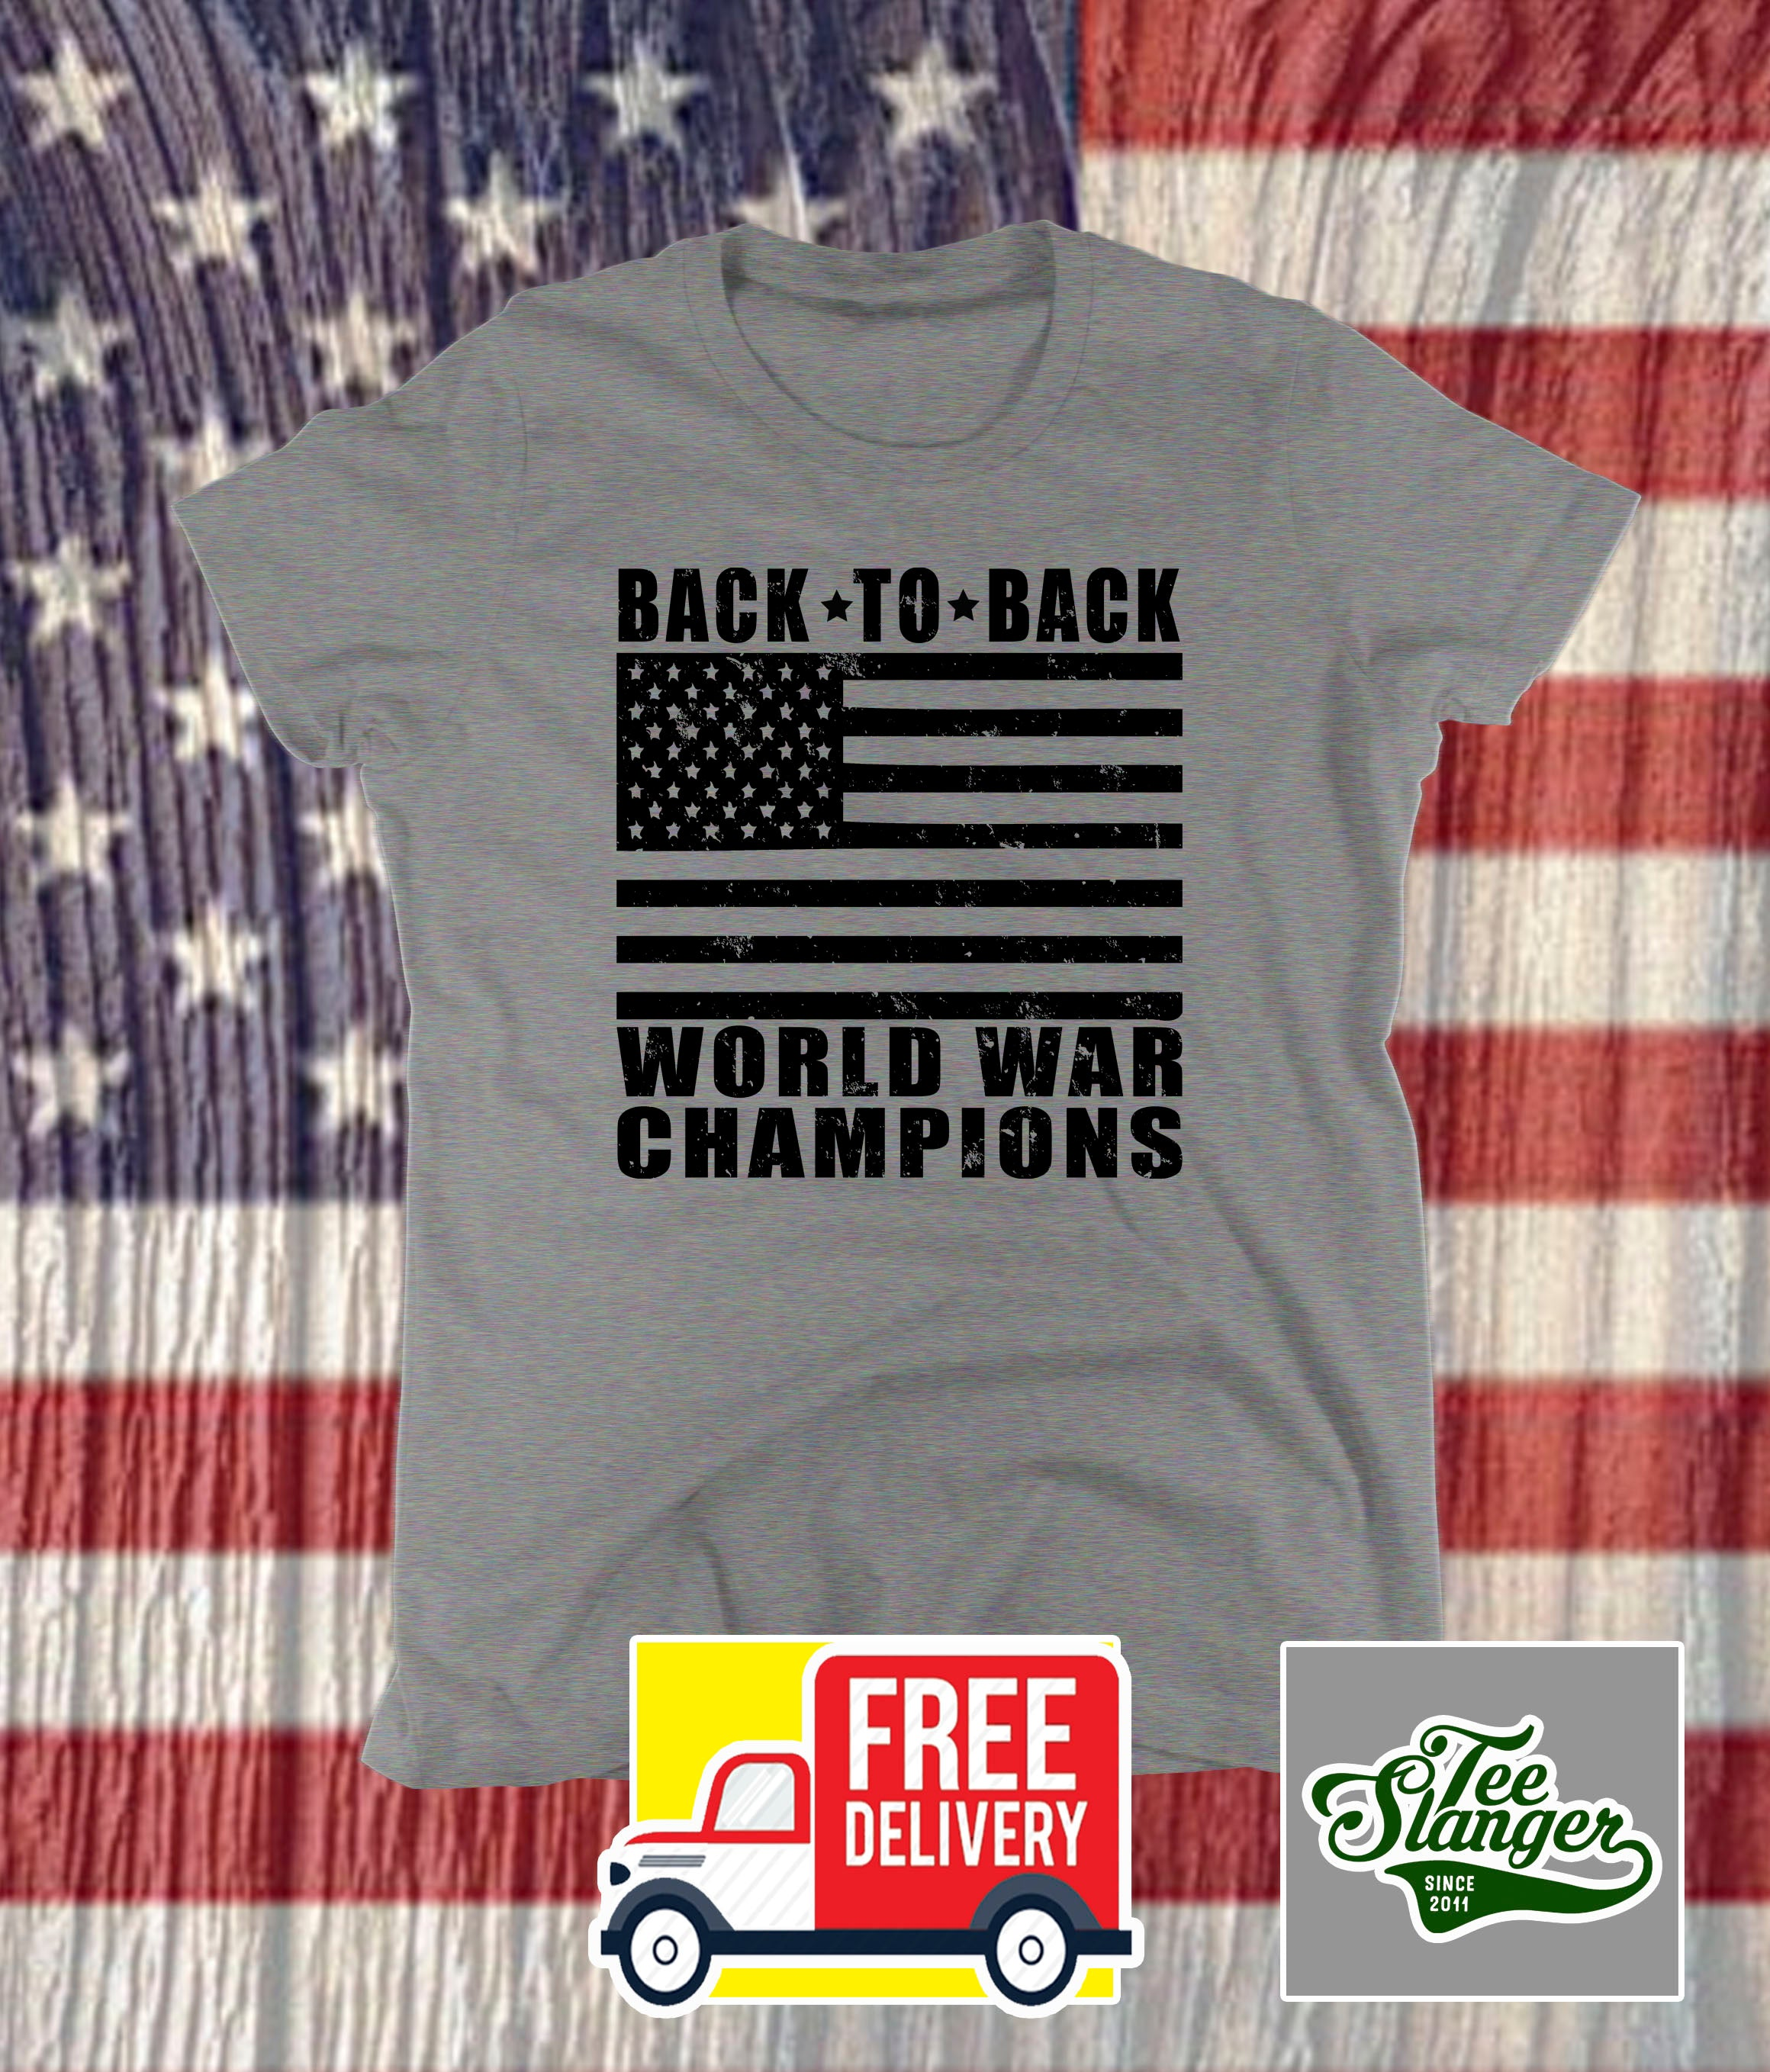 BACK TO BACK WORLD WAR CHAMPIONS LADIES T-SHIRT